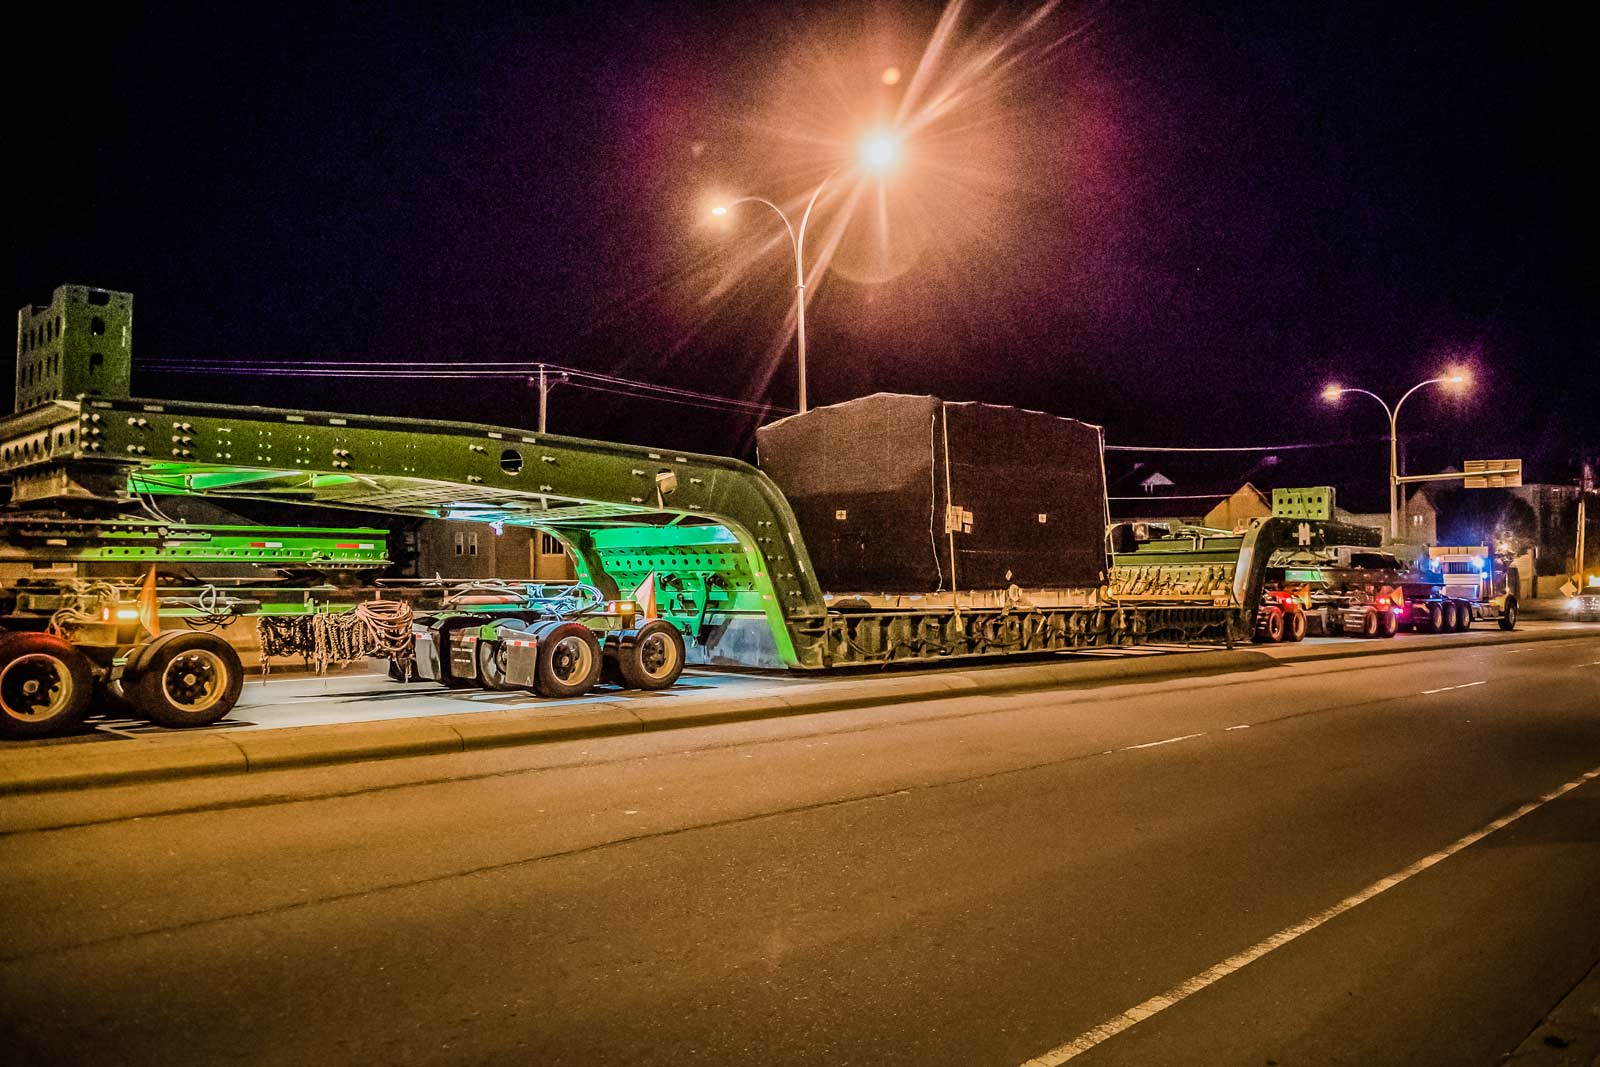 150-ton dual lane trailer carrying compressor package on highway at night